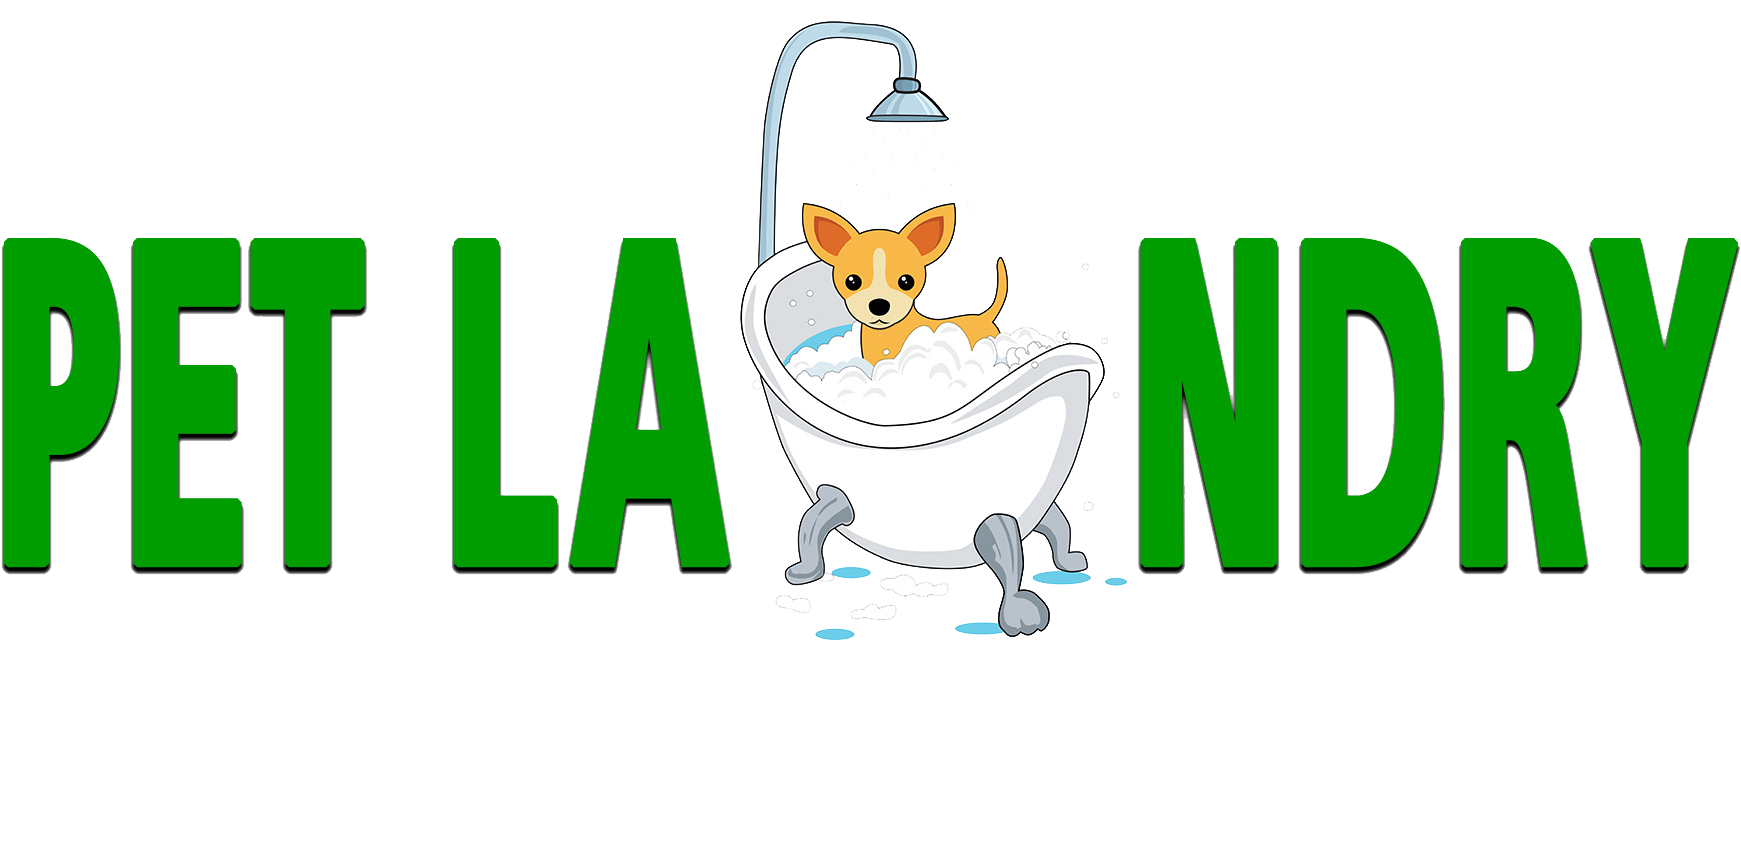 Pet clipart home pet. Services my laundry